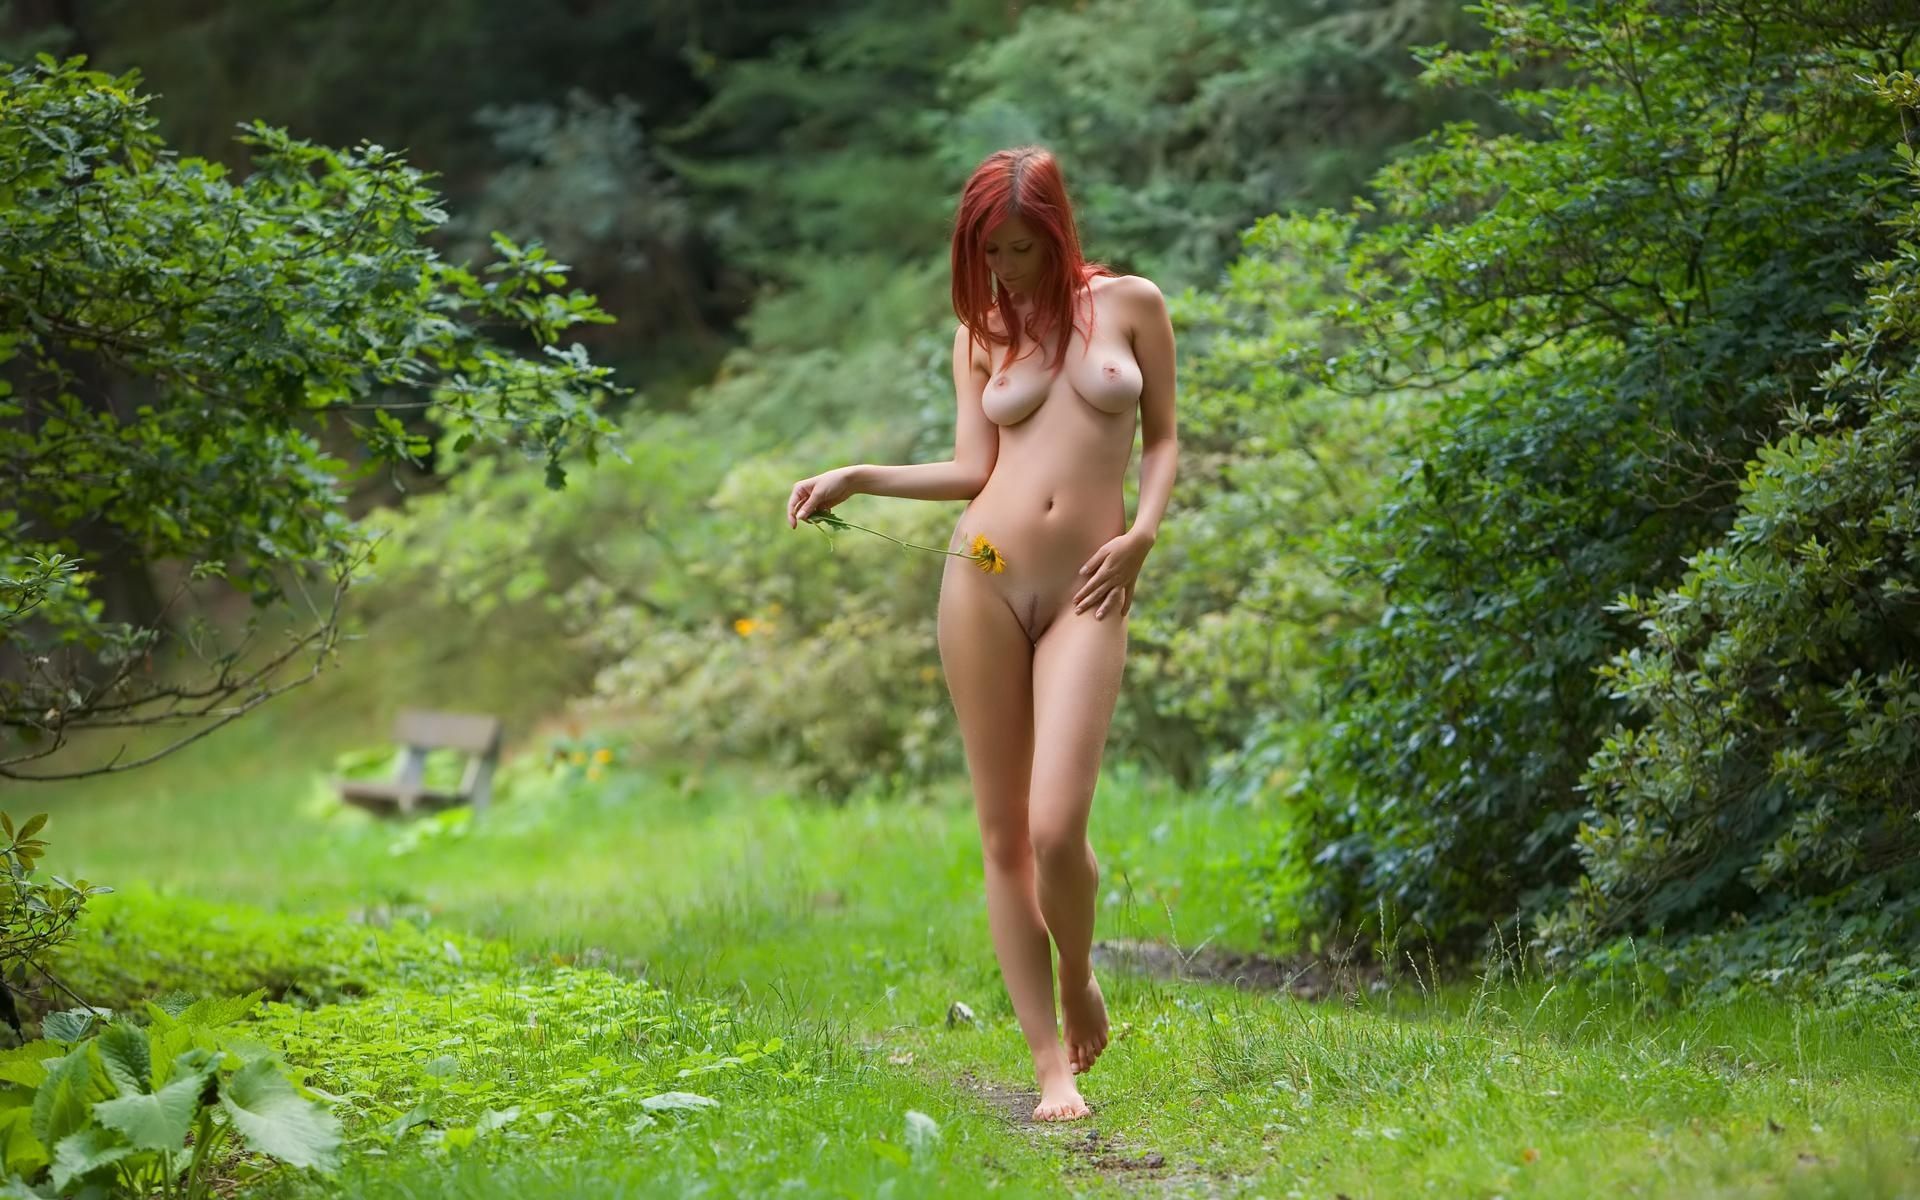 College girls nude outside